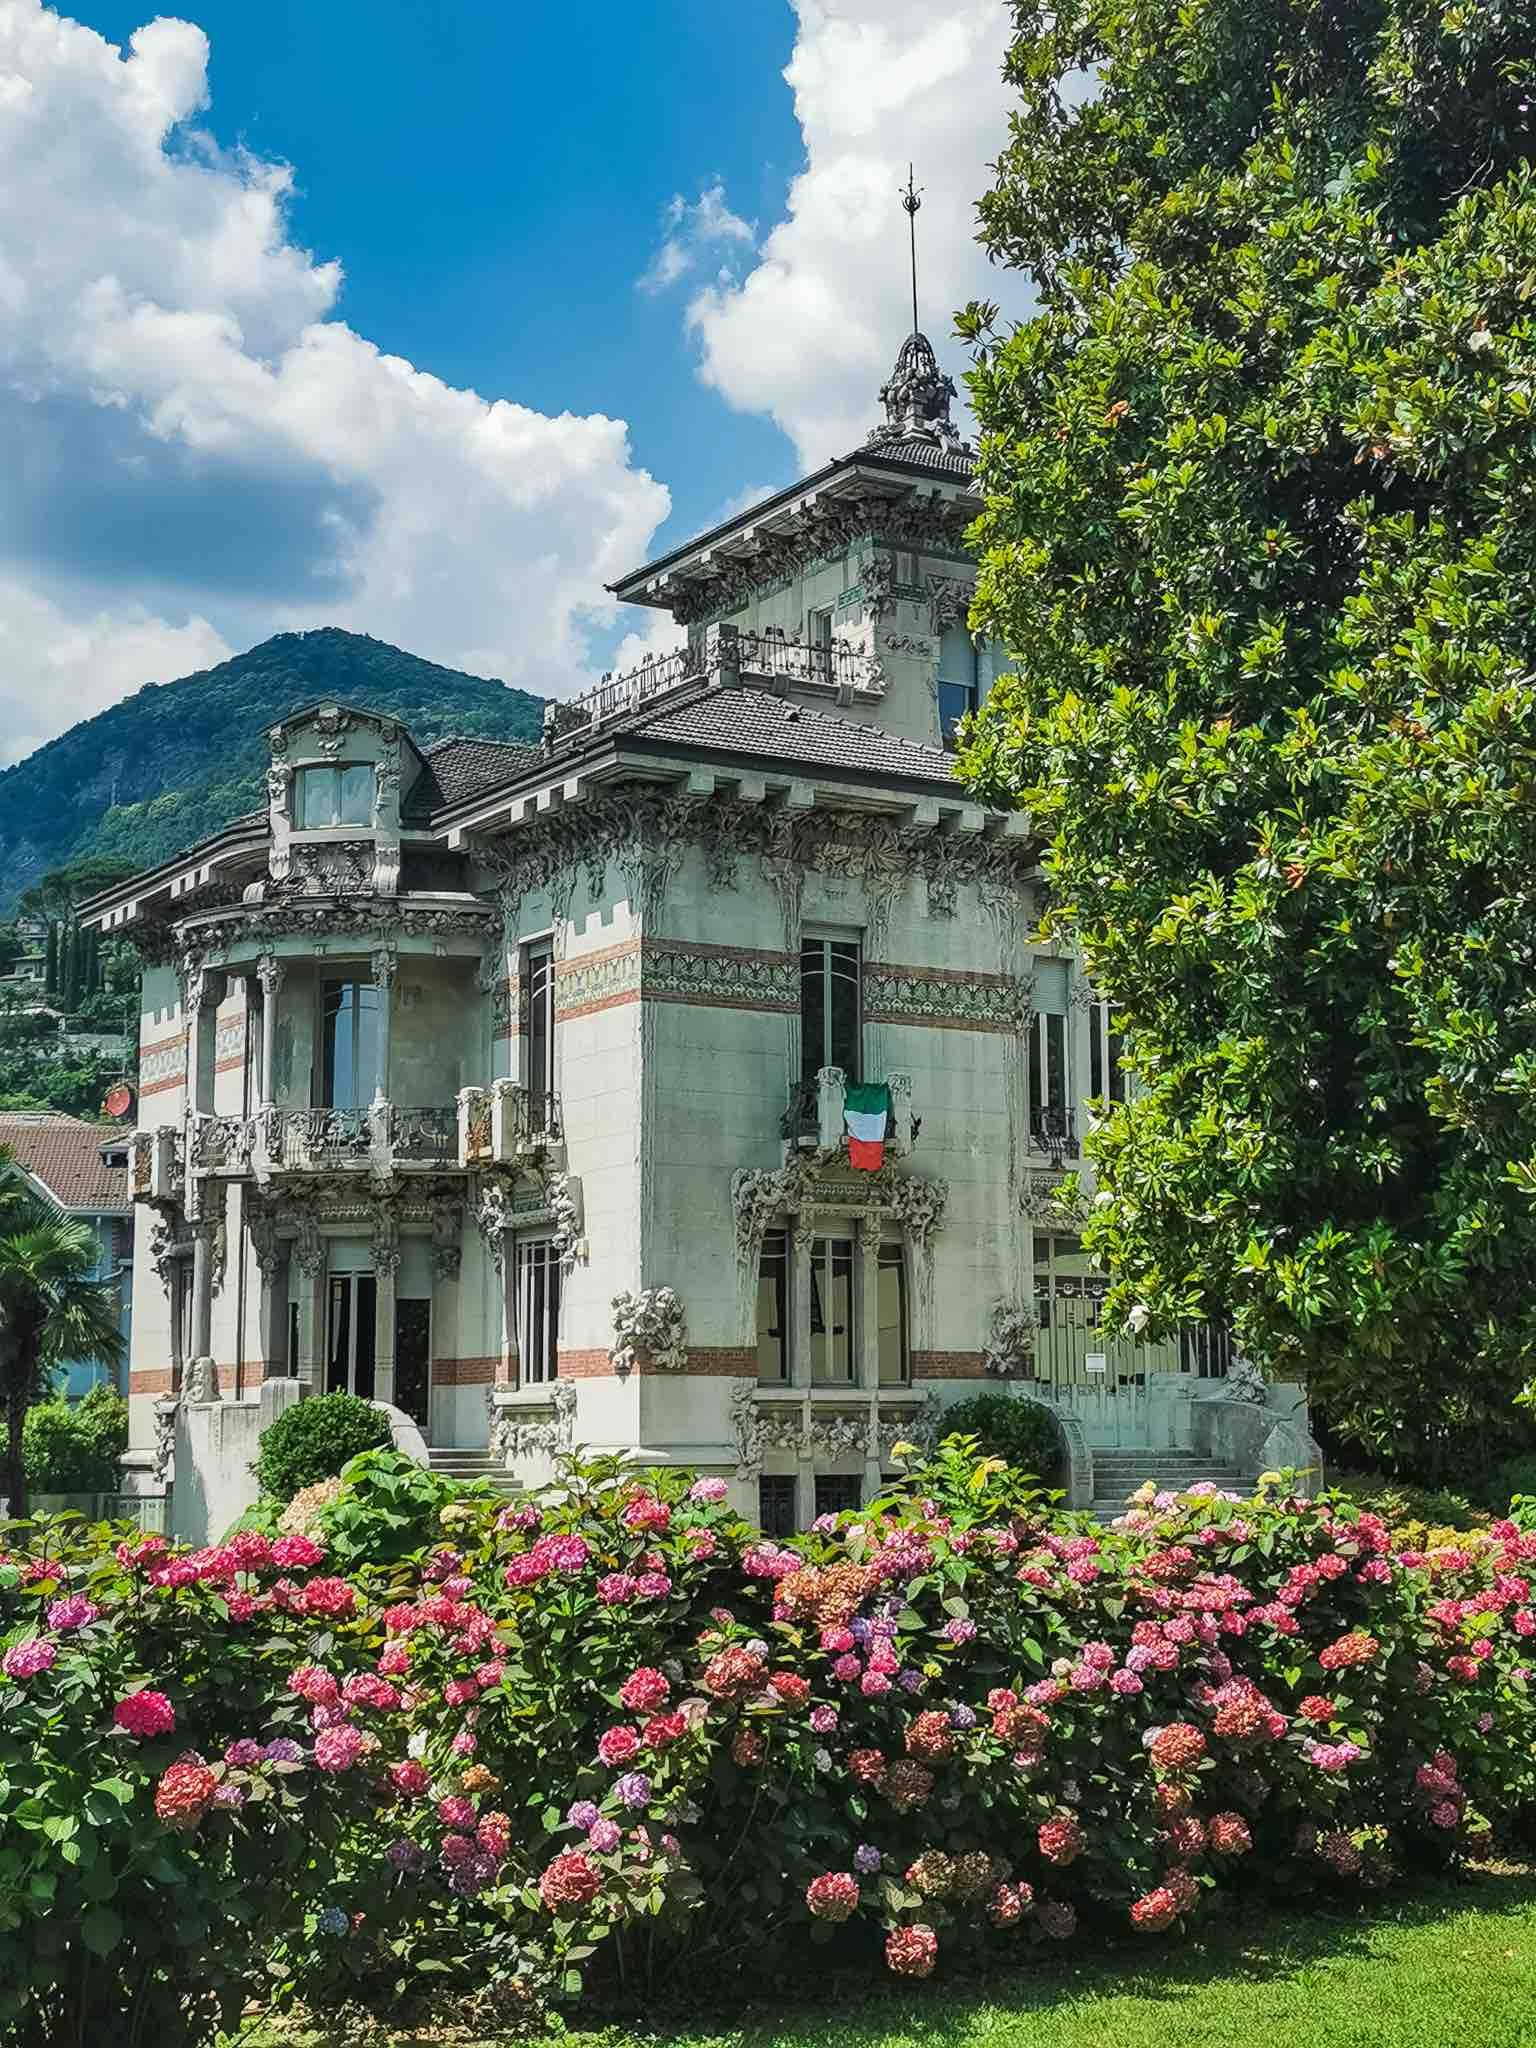 The unique facade of Villa Bernasconi, a rare example of liberty style in Lake Como